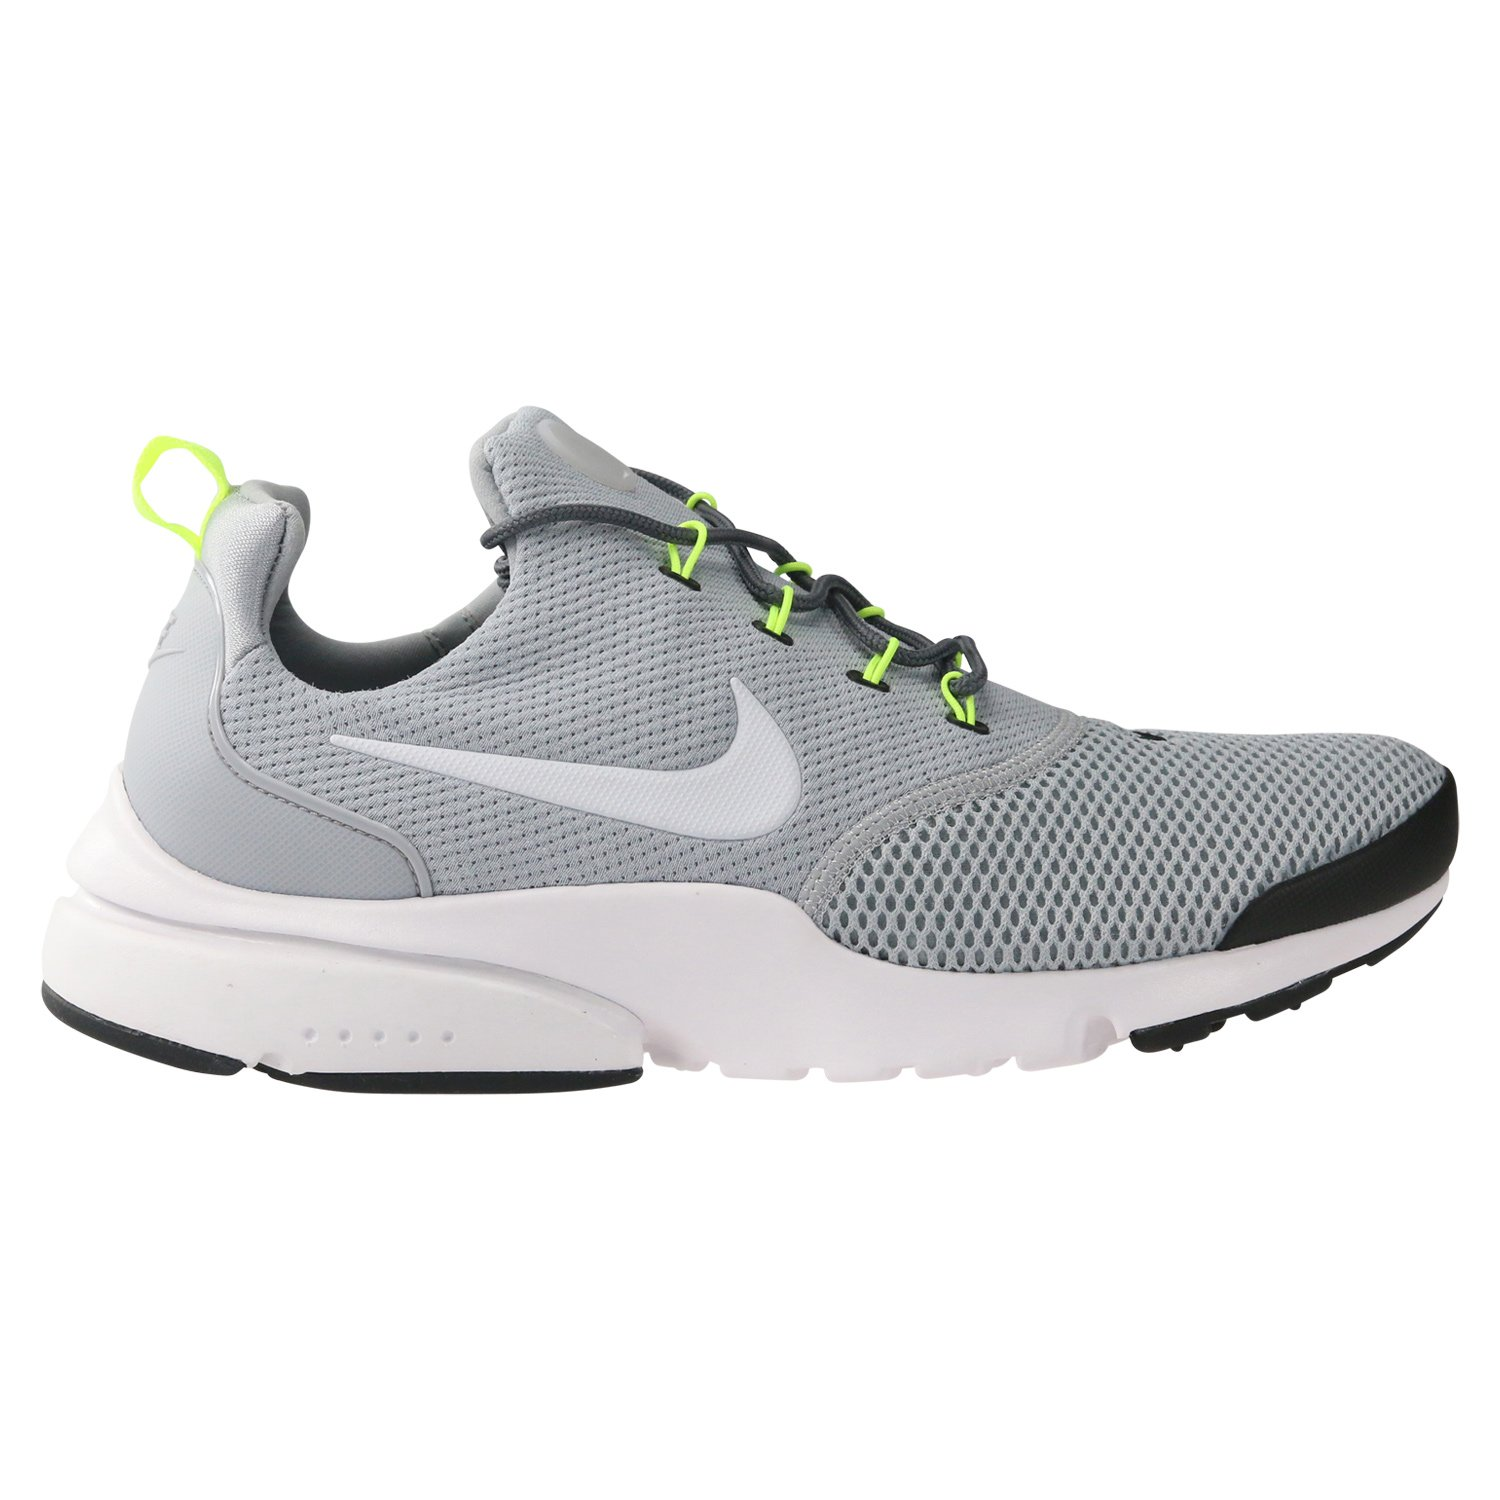 8c0e8e0a63a4 Galleon - NIKE Presto Fly Mens Running Trainers 908019 Sneakers Shoes (UK  11 US 12 EU 46